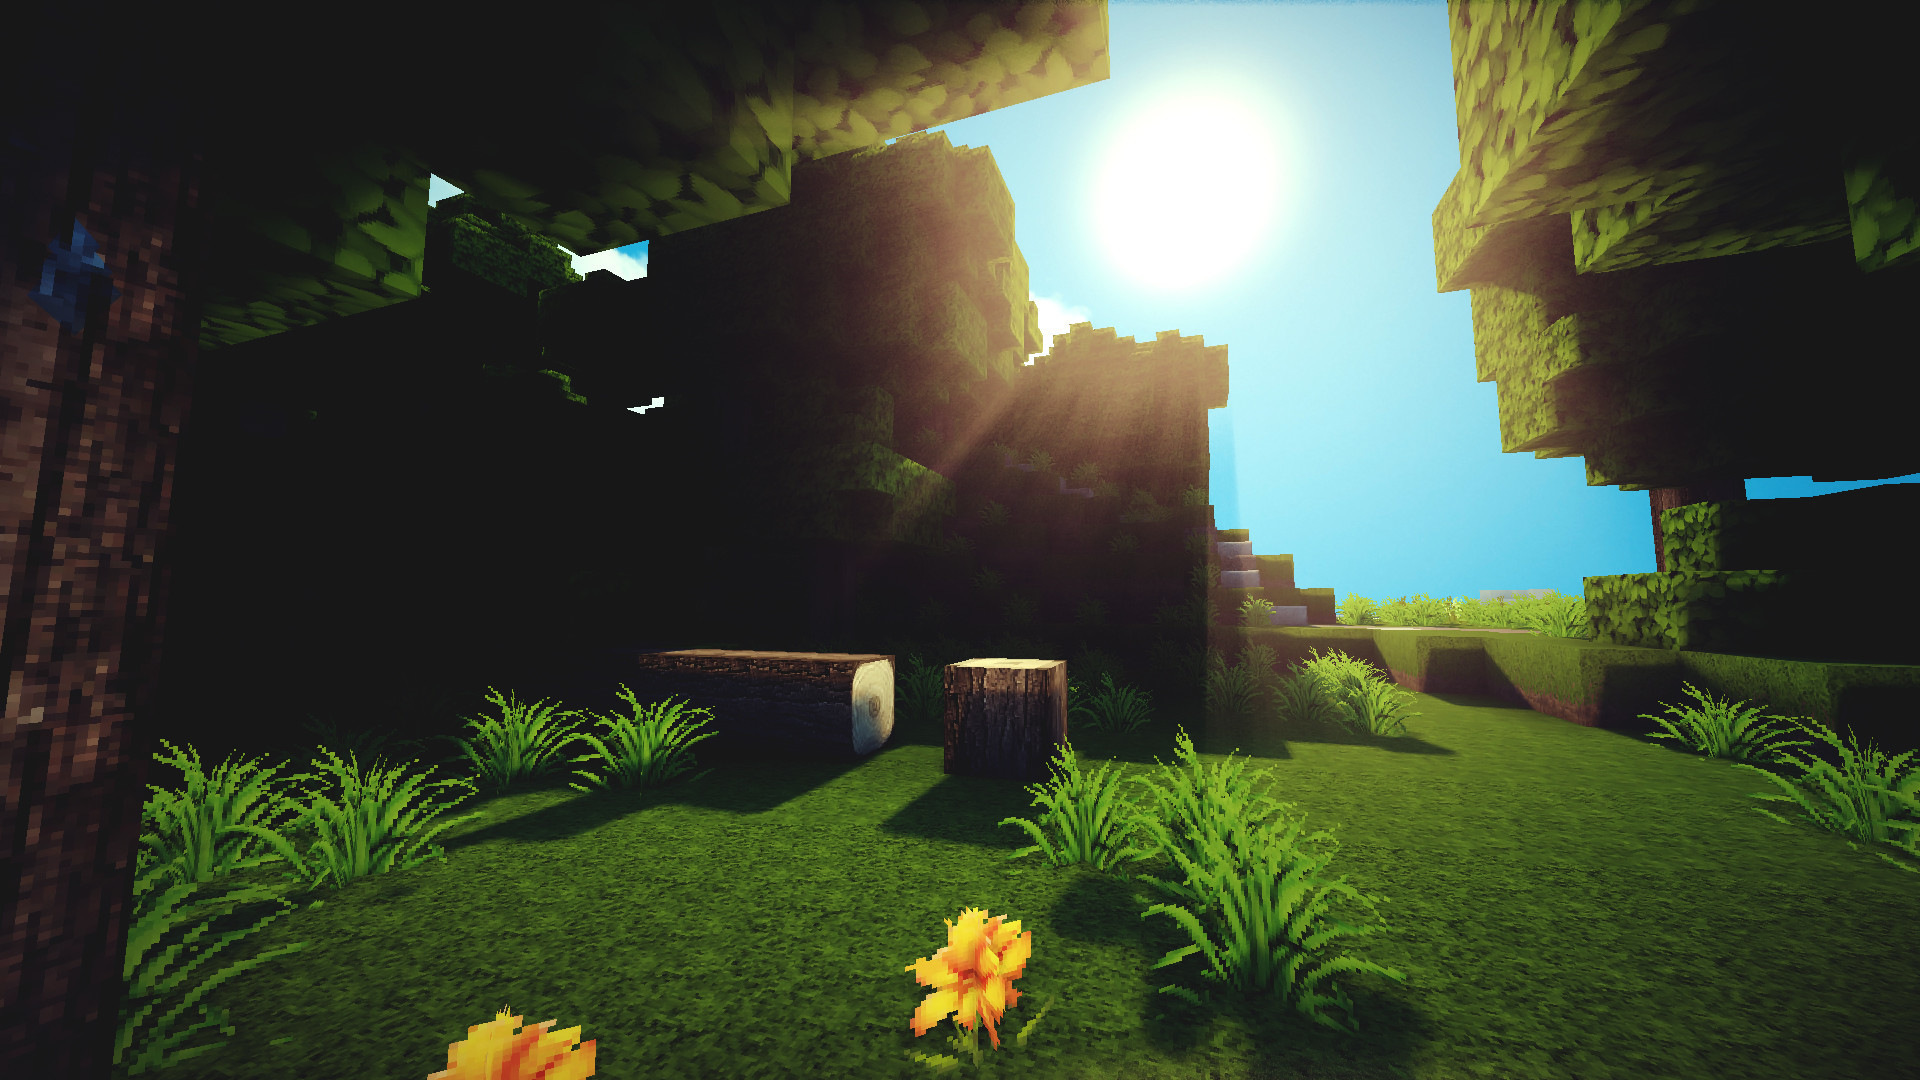 1920x1200 Fabulous Awesome Minecraft Wallpapers Creeper te Minecraft Creeper Wallpapers for Computer HD Wallpaper of 1920x1200